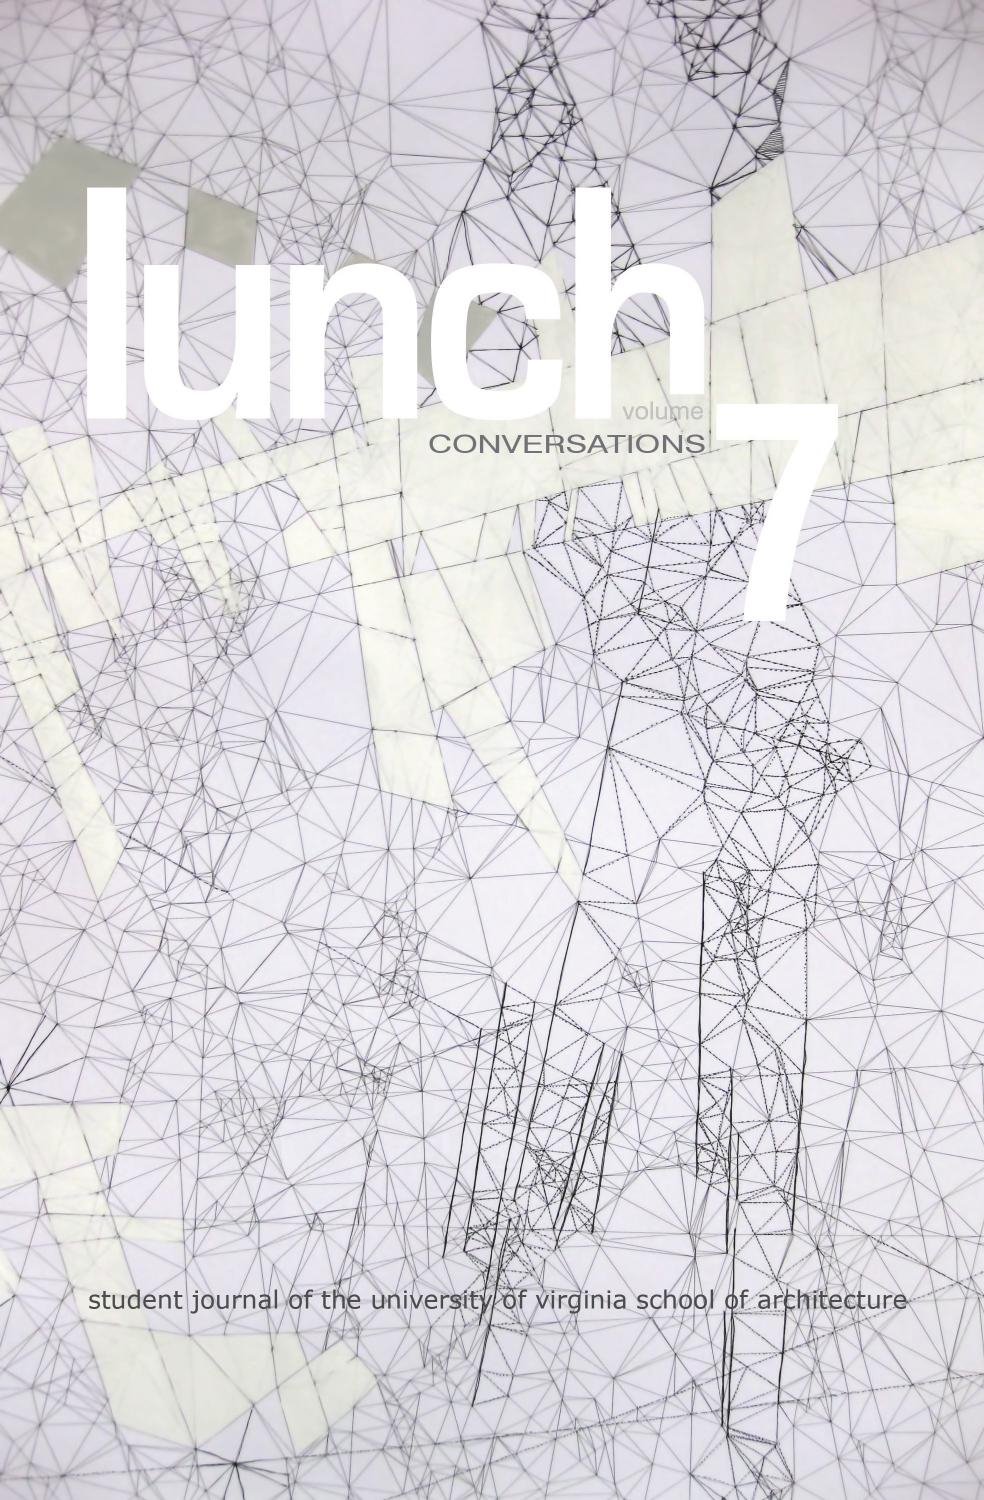 Lunch7 Conversations By Uva Lunch Issuu So Bogost S Use Of Exploded View Diagrams Helps To Put Flesh On Just